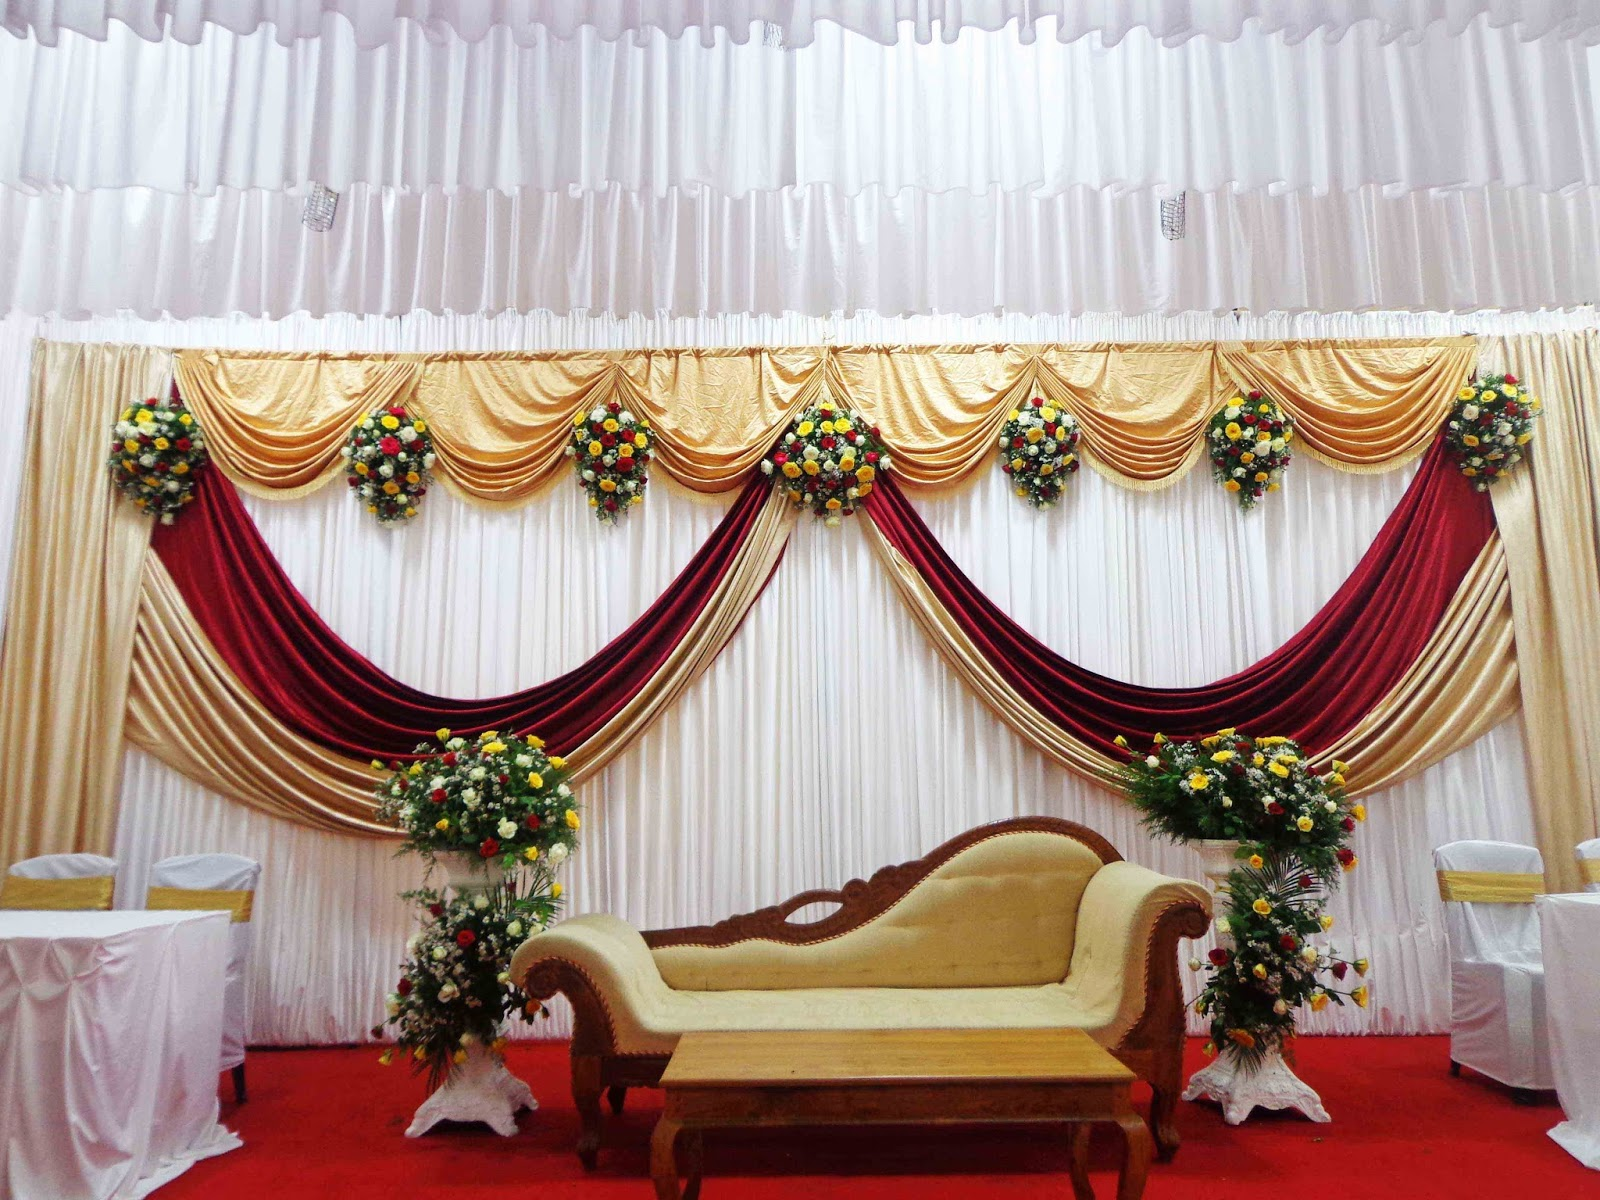 Most beautiful wedding stage decoration ideas designs 2015 Married to design